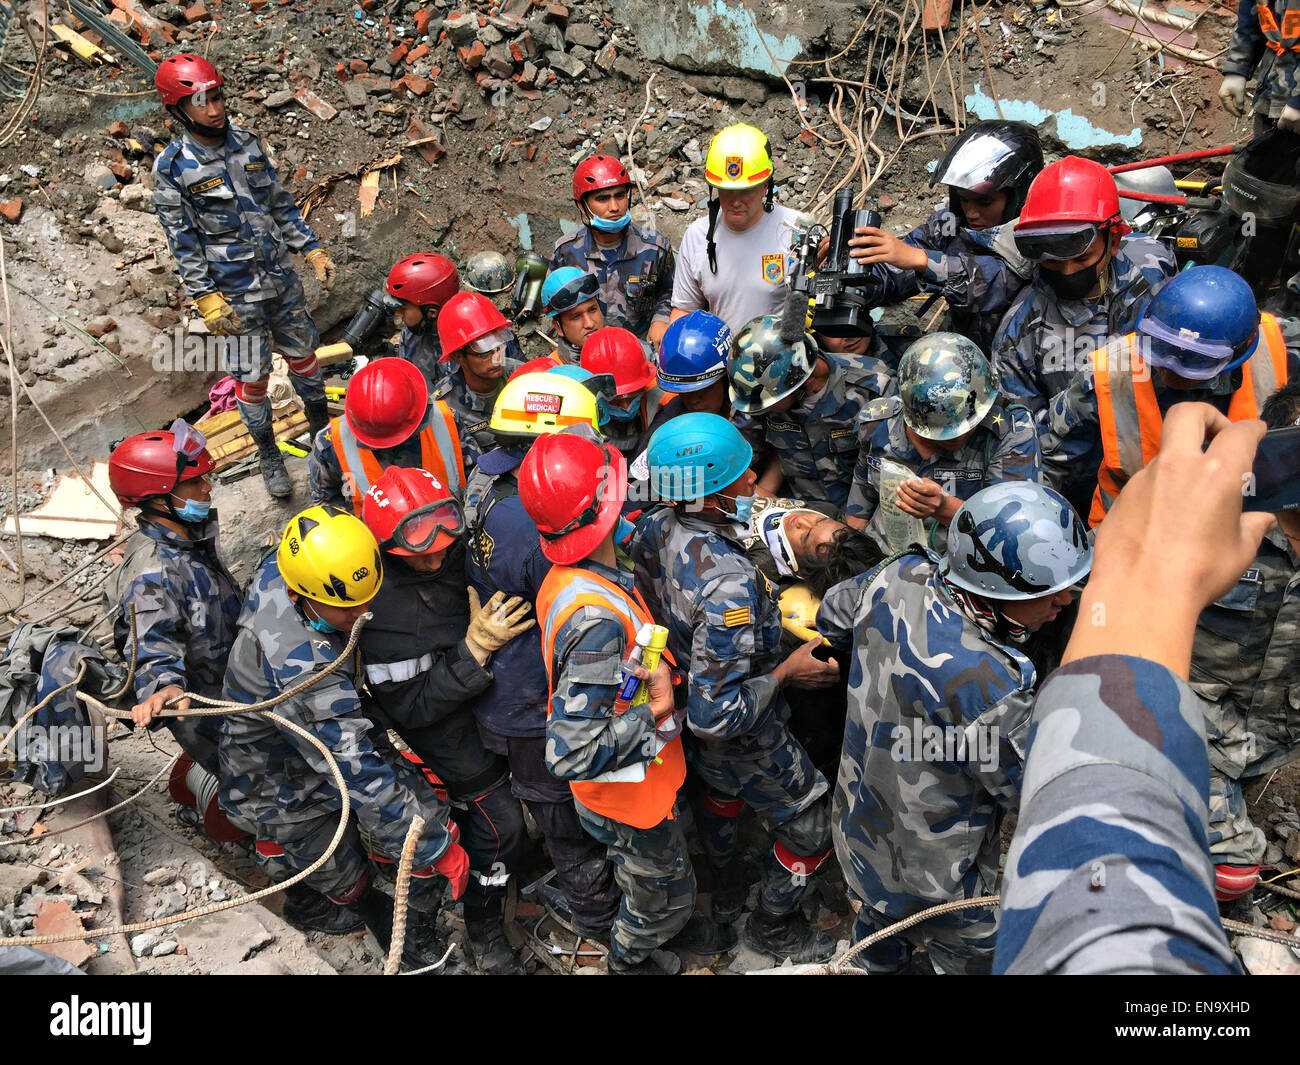 A USAID search and rescue team member from the Fairfax County Fire Department pulls a 15-year-old earthquake victim - Stock Image